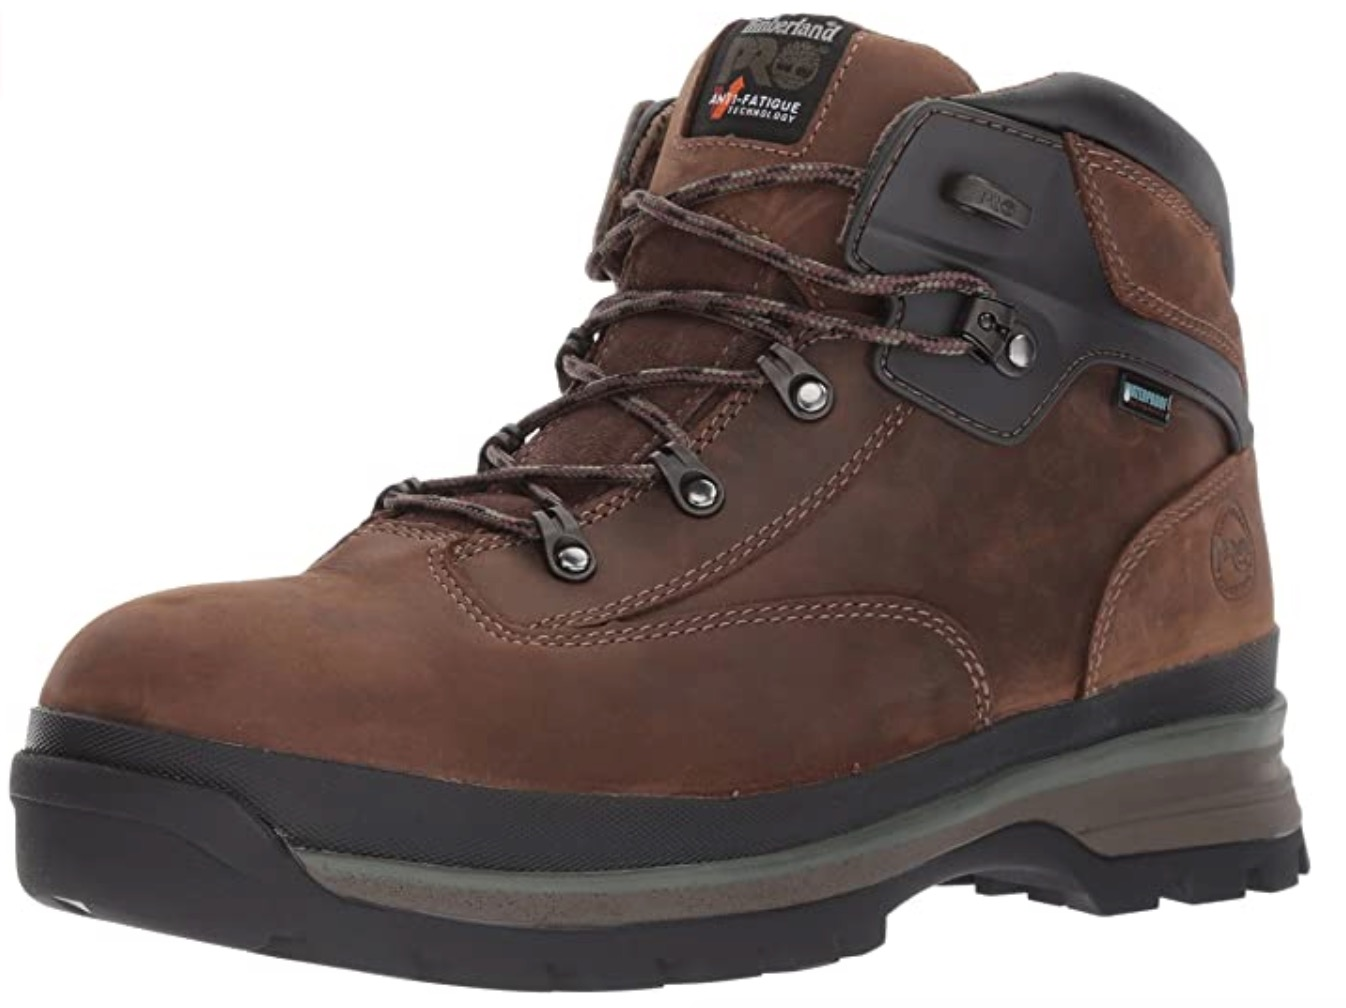 Best Hot Weather Work Boots For Summer 2) Timberland PRO Men